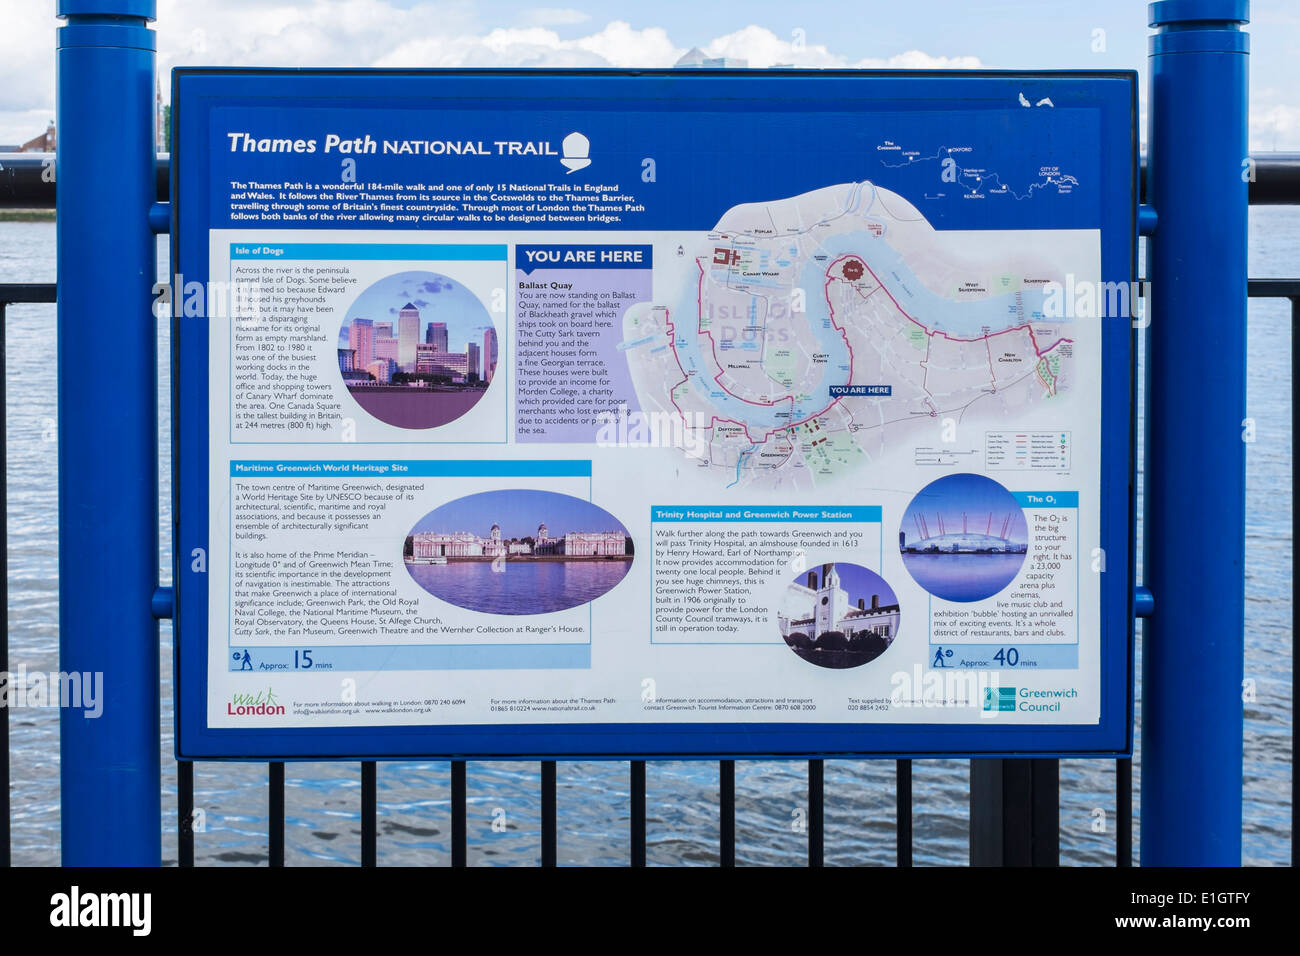 Thames Path National Route sign and map showing route along the river Thames, Ballast Quay, Greenwich, SE London - Stock Image